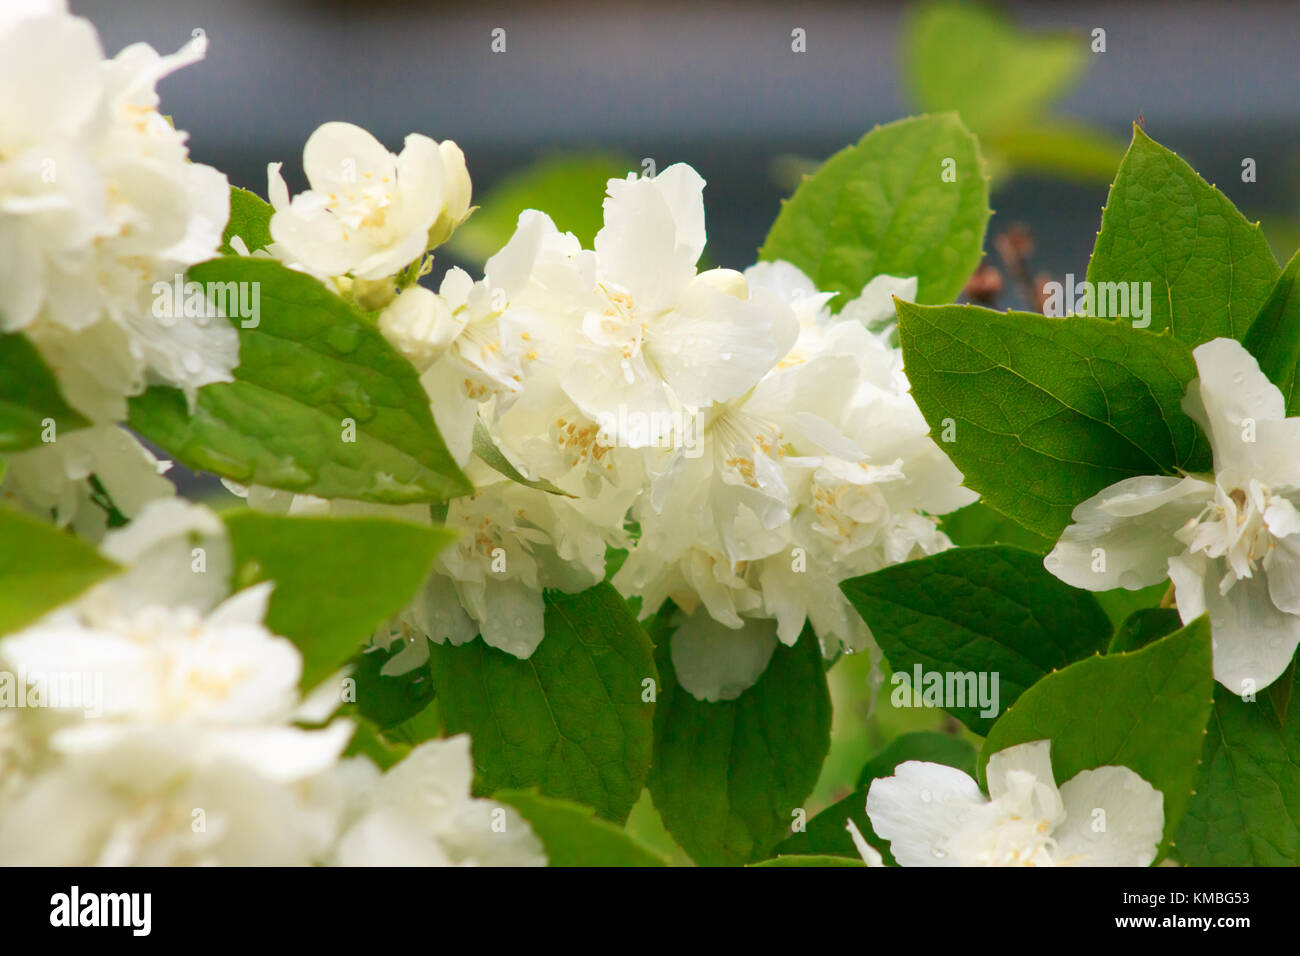 White flowers of terry jasmine with droplets of dew on petals and white flowers of terry jasmine with droplets of dew on petals and leaves background close izmirmasajfo Choice Image